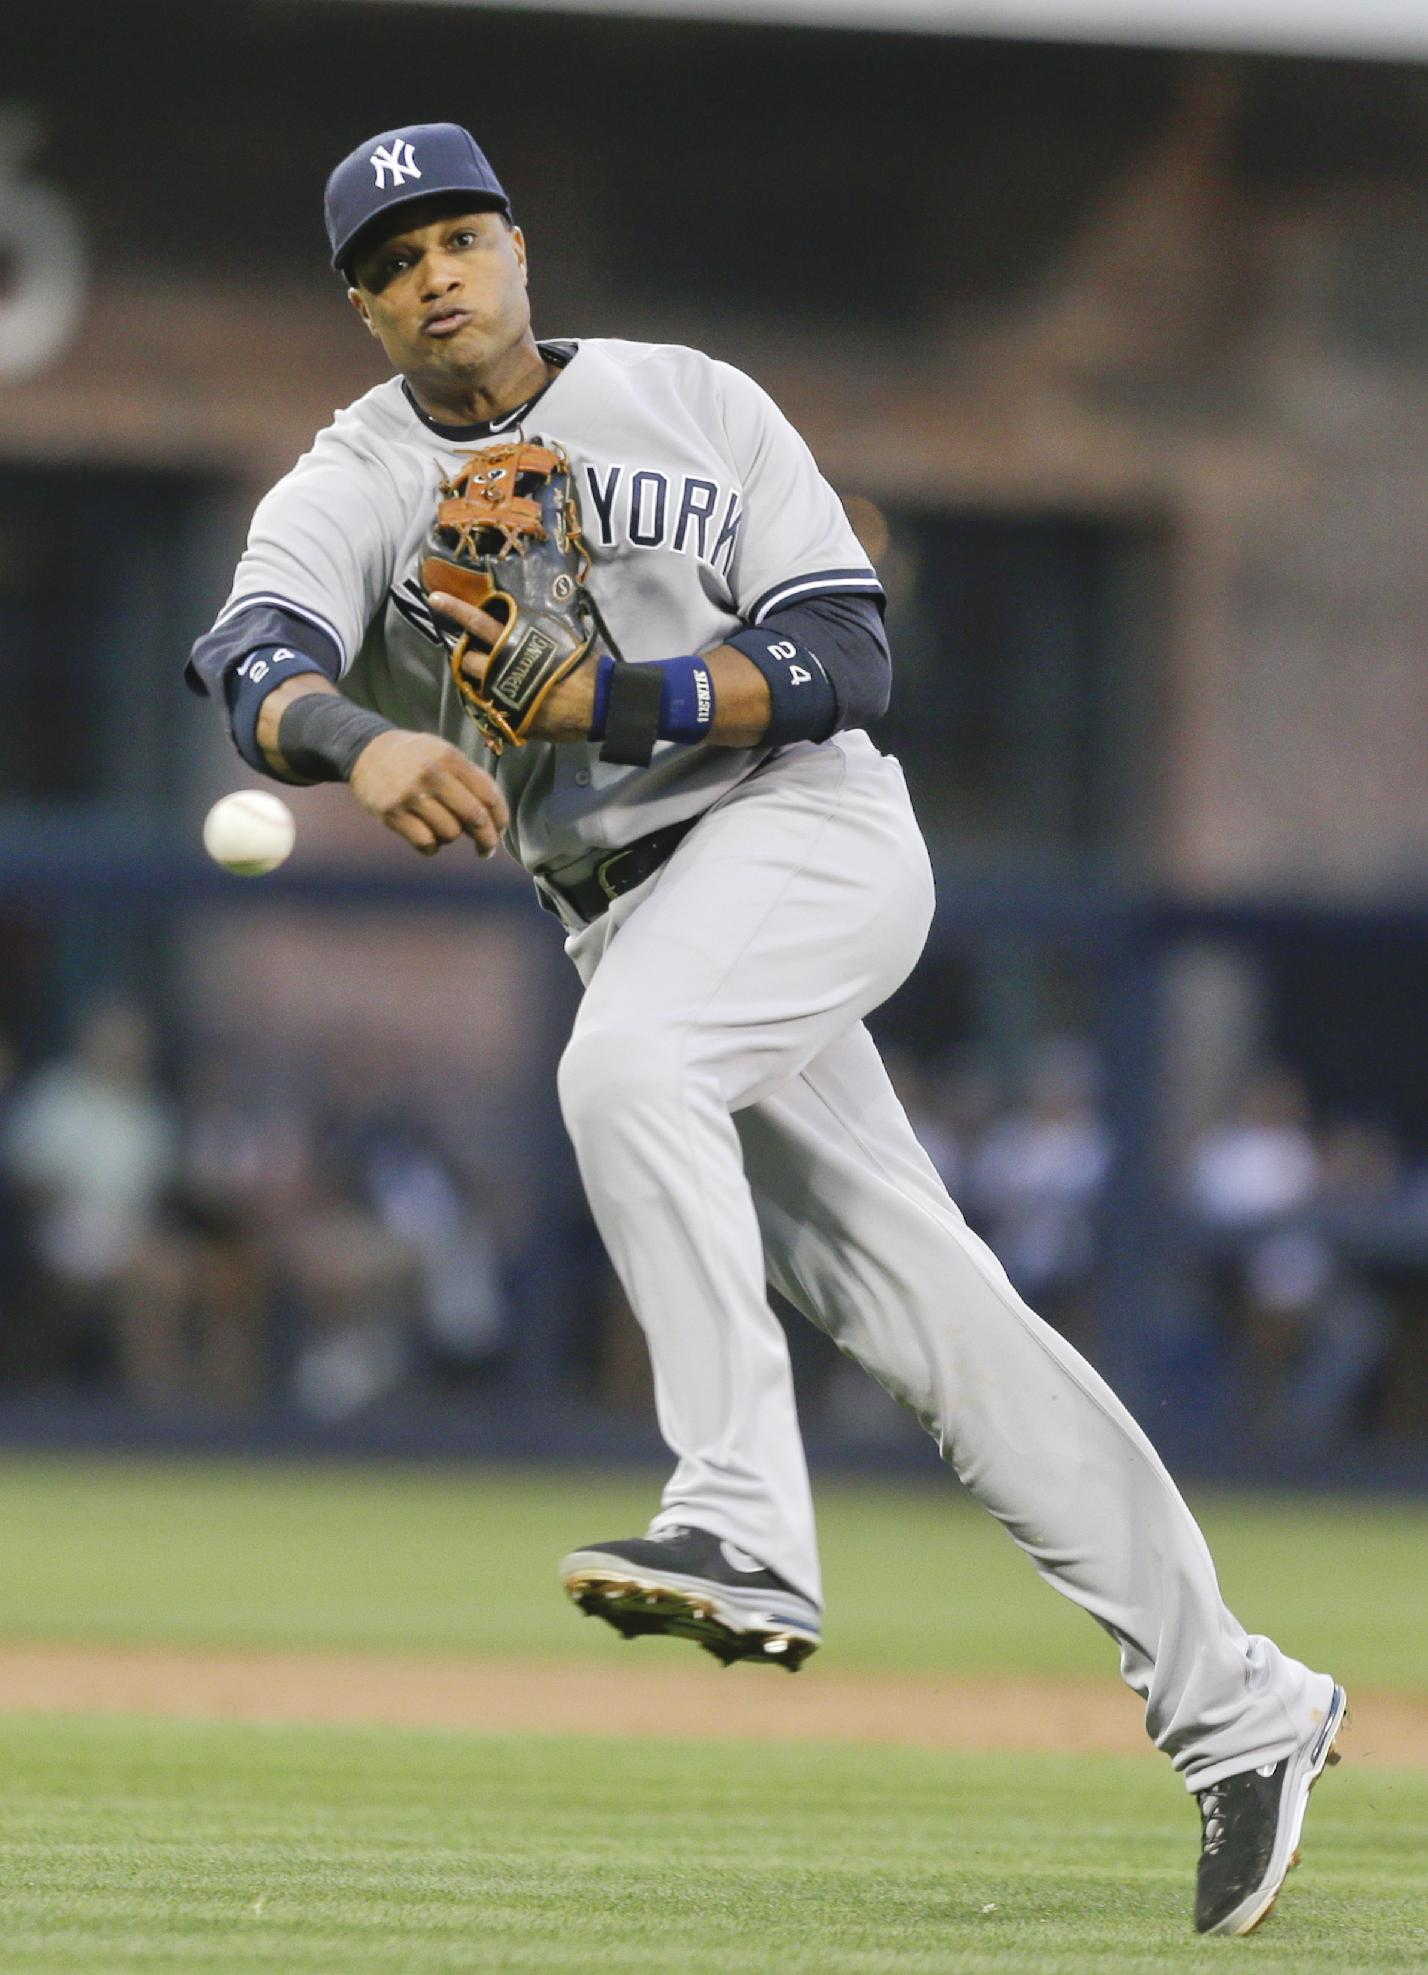 robinson cano agrees to monster deal with mariners sd yankee report